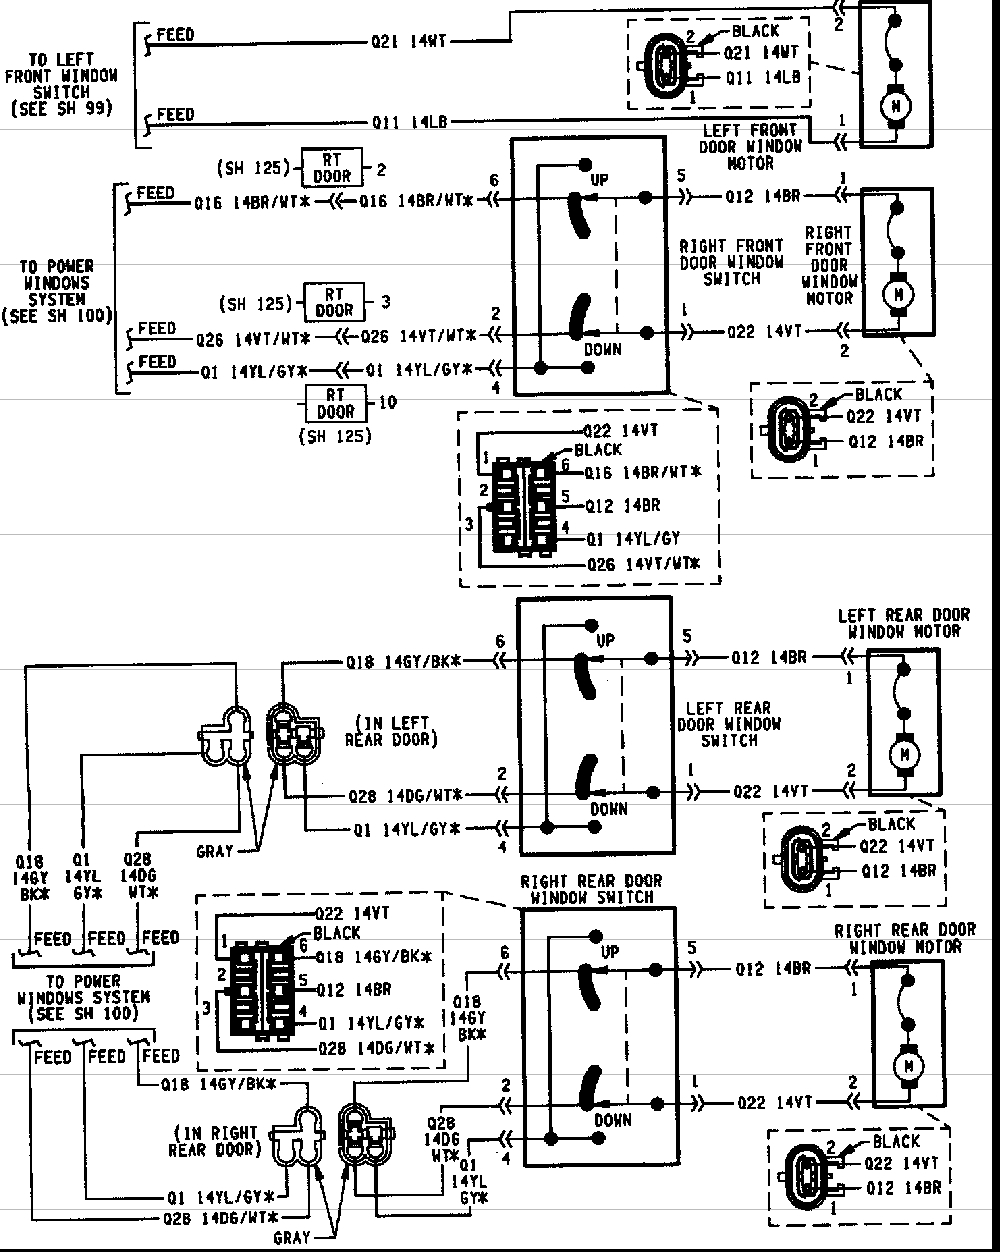 2004 jeep grand cherokee stereo wiring diagram Collection-1999 Jeep Grand Cherokee Radio Wiring Diagram Wiring Diagram Jeep Grand Cherokee 14-d